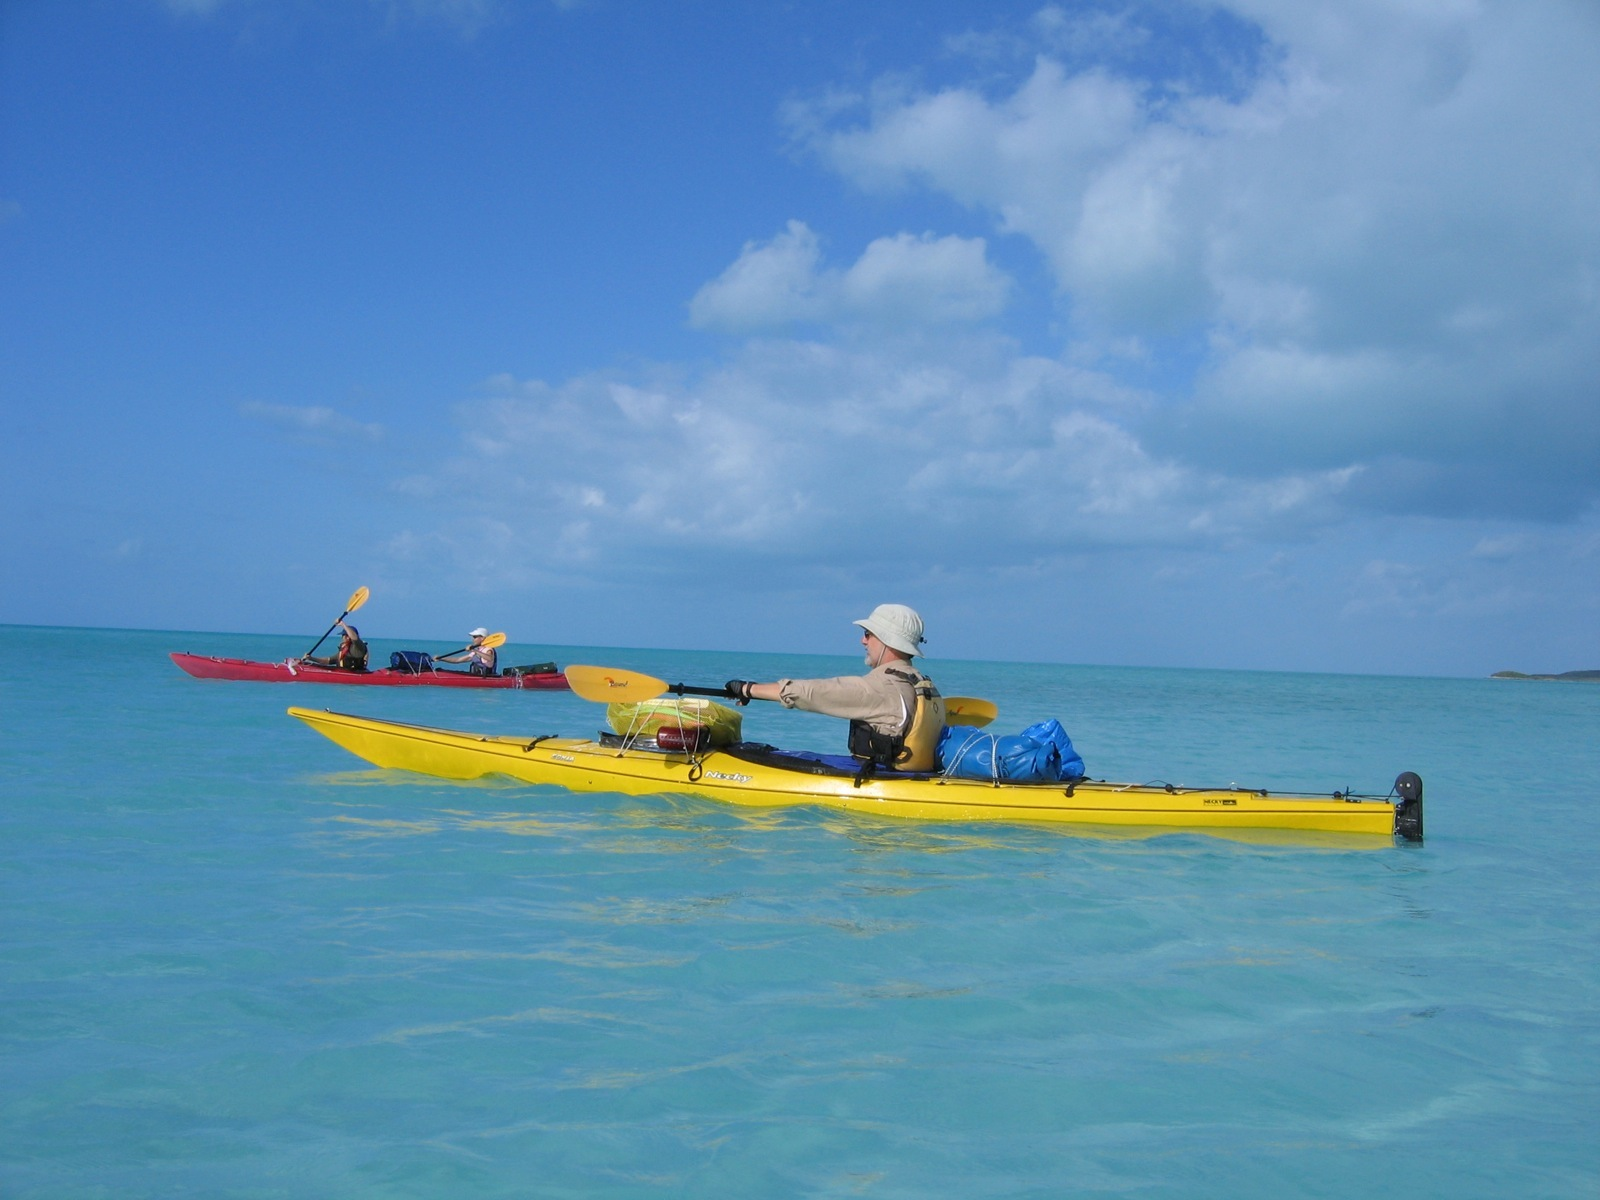 Three Paddlers In Two Sea Kayaks Paddle The Tranquil Blue Waters Of Bahamas Under A